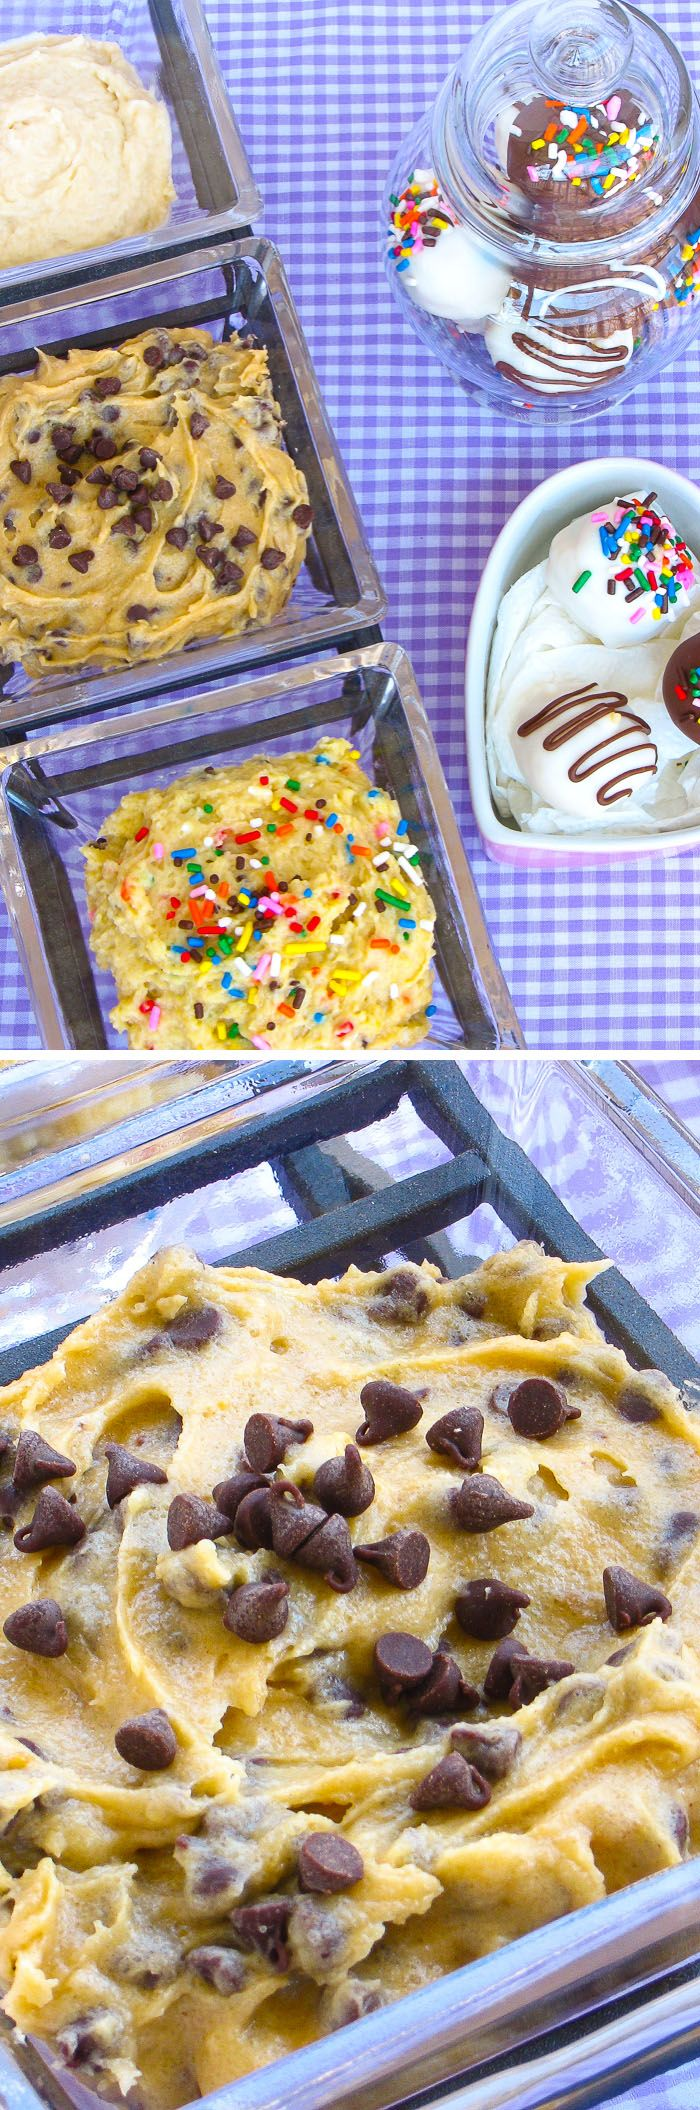 Three Safe-to-Eat Cookie Doughs: Chocolate Chip, Sugar, and Cake Batter! Eat these cookie doughs straight from the spoon. A perfect quick snack!